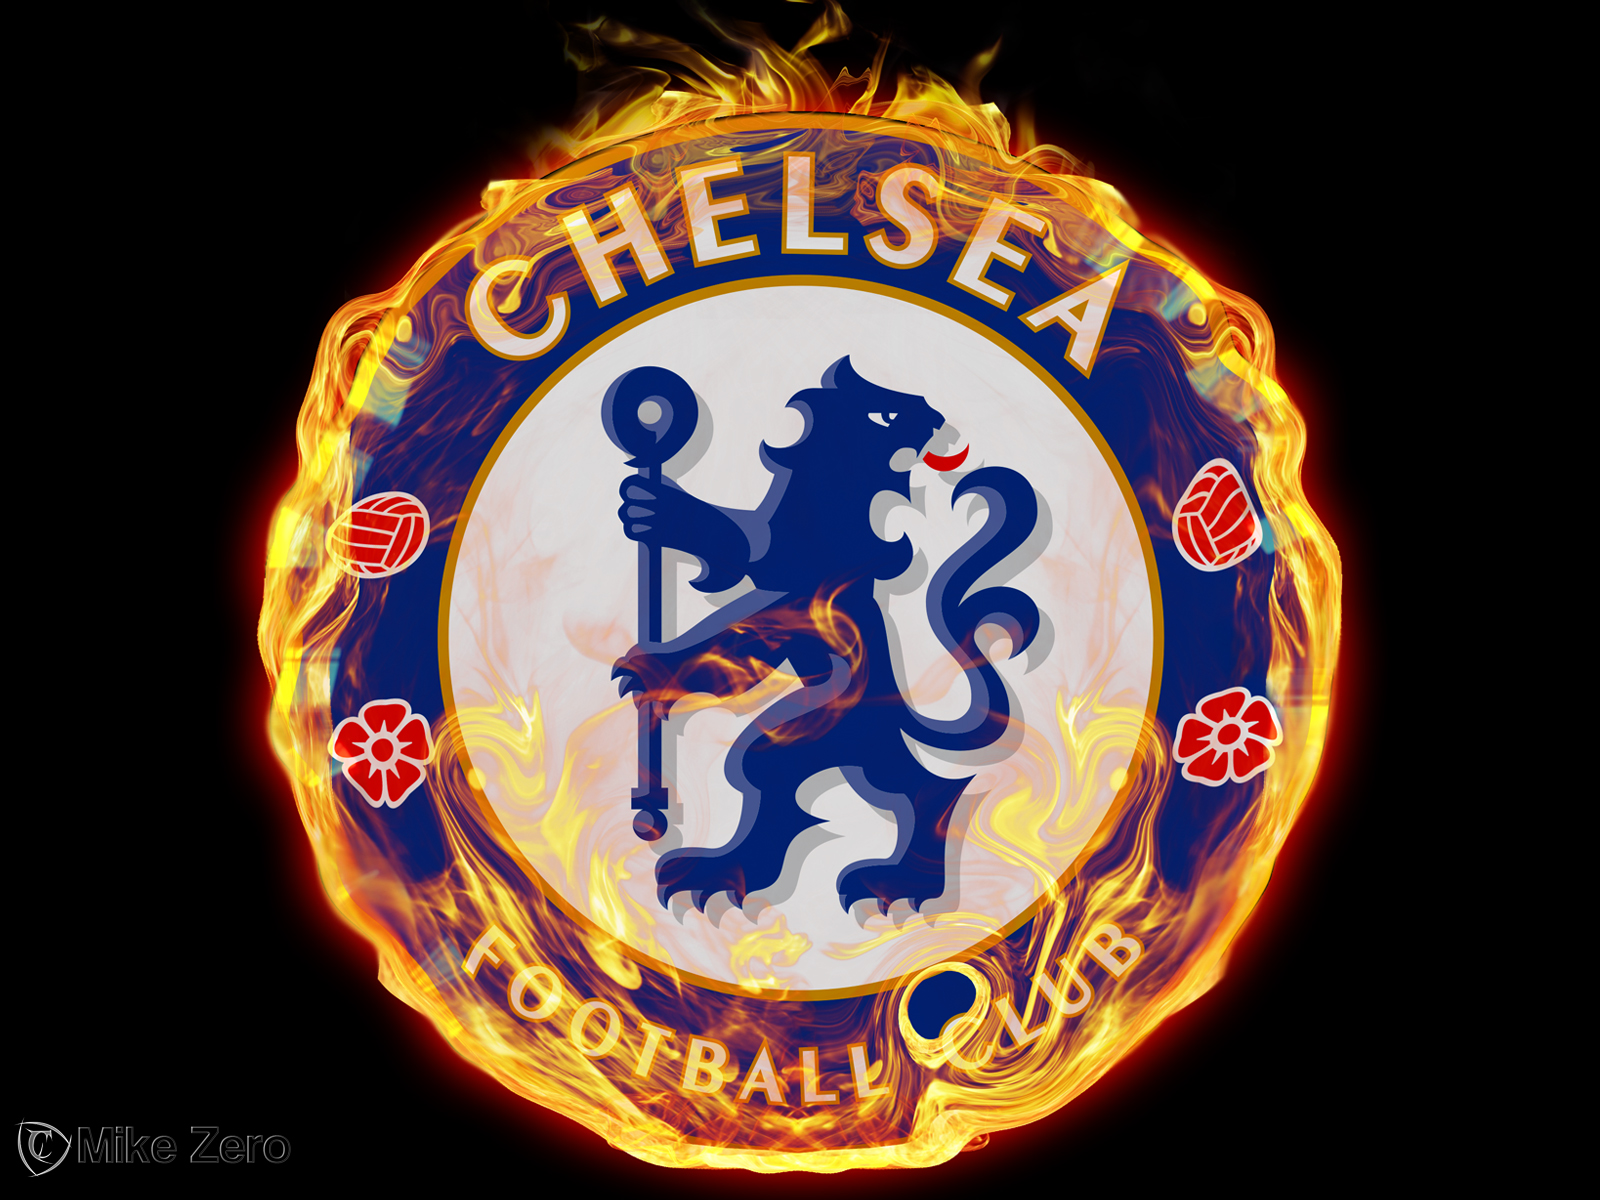 Chelsea FC On Fire